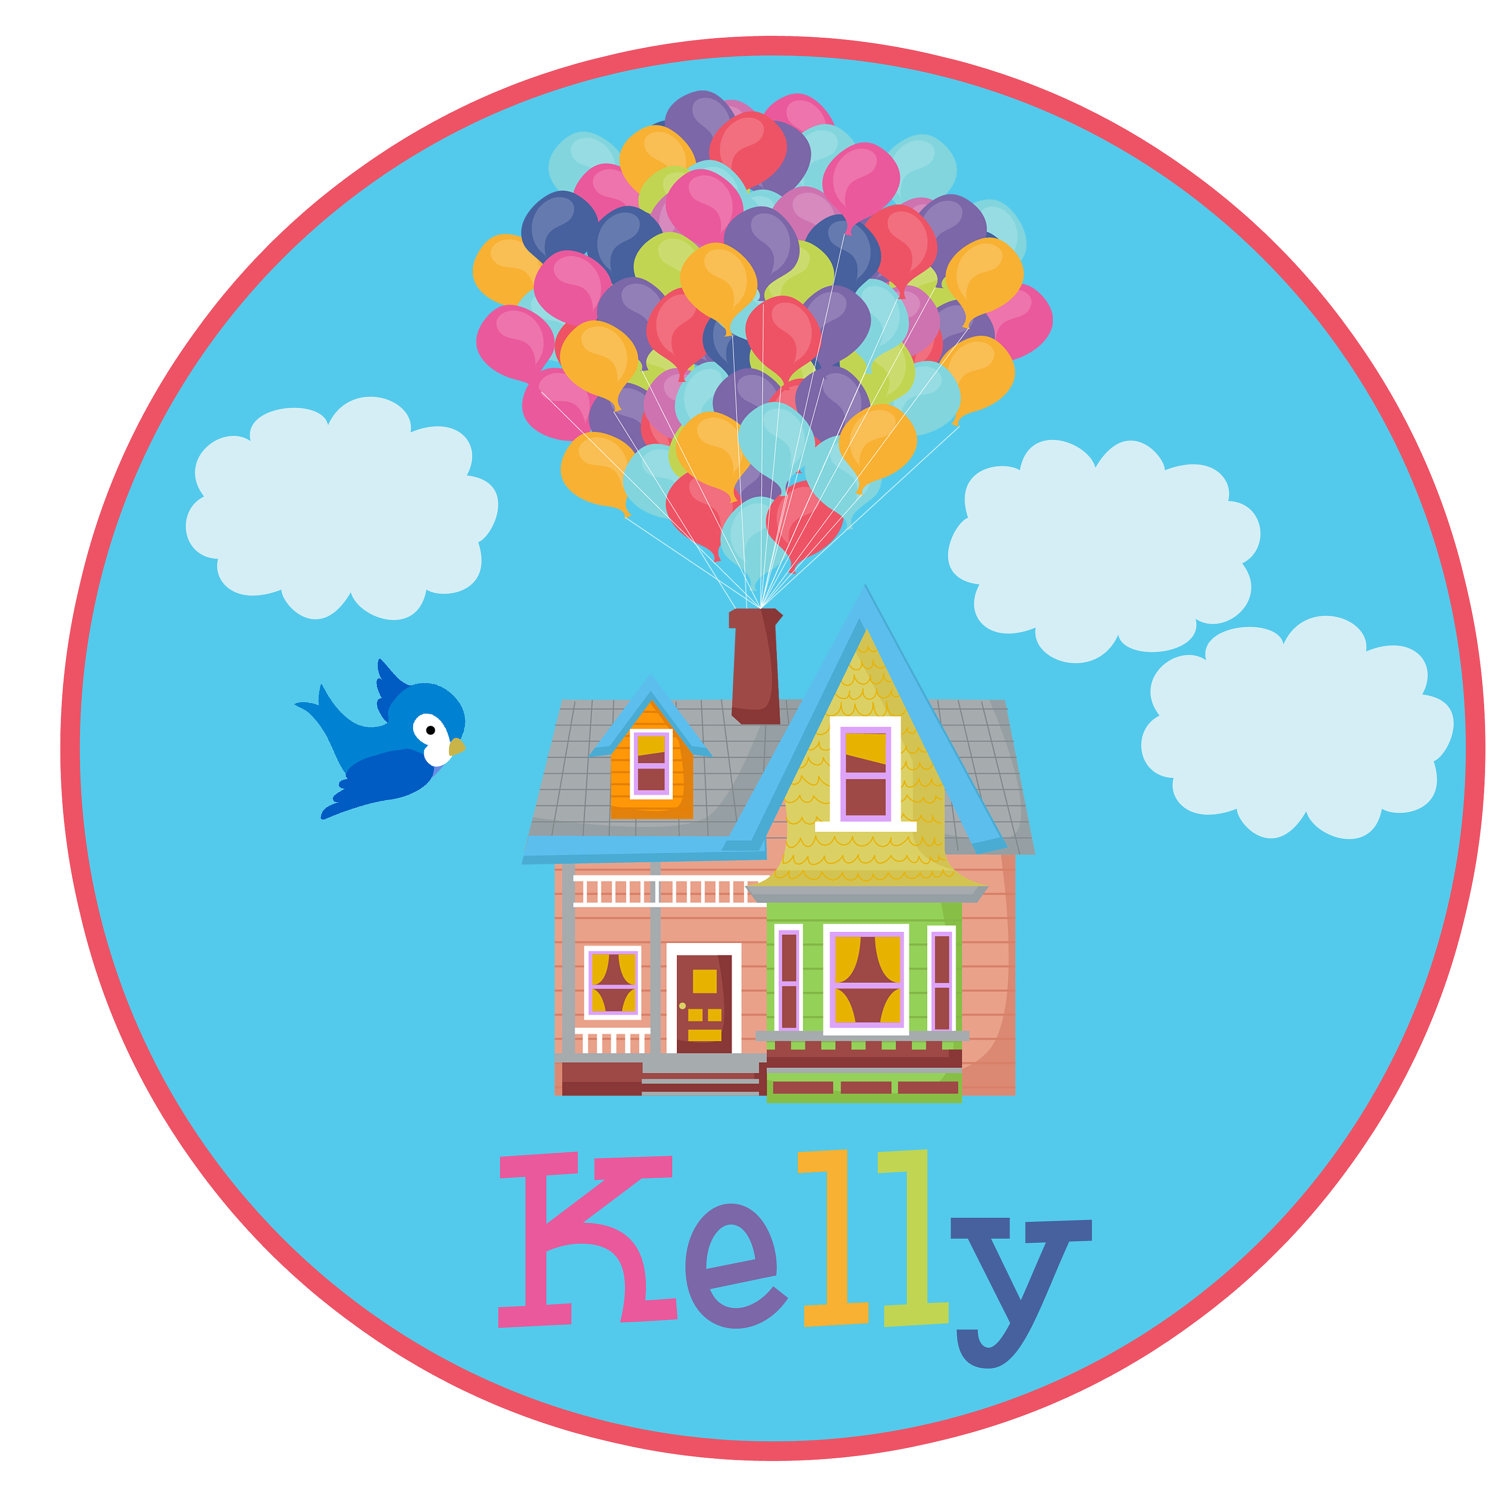 Up house drawing at. Balloon clipart classy